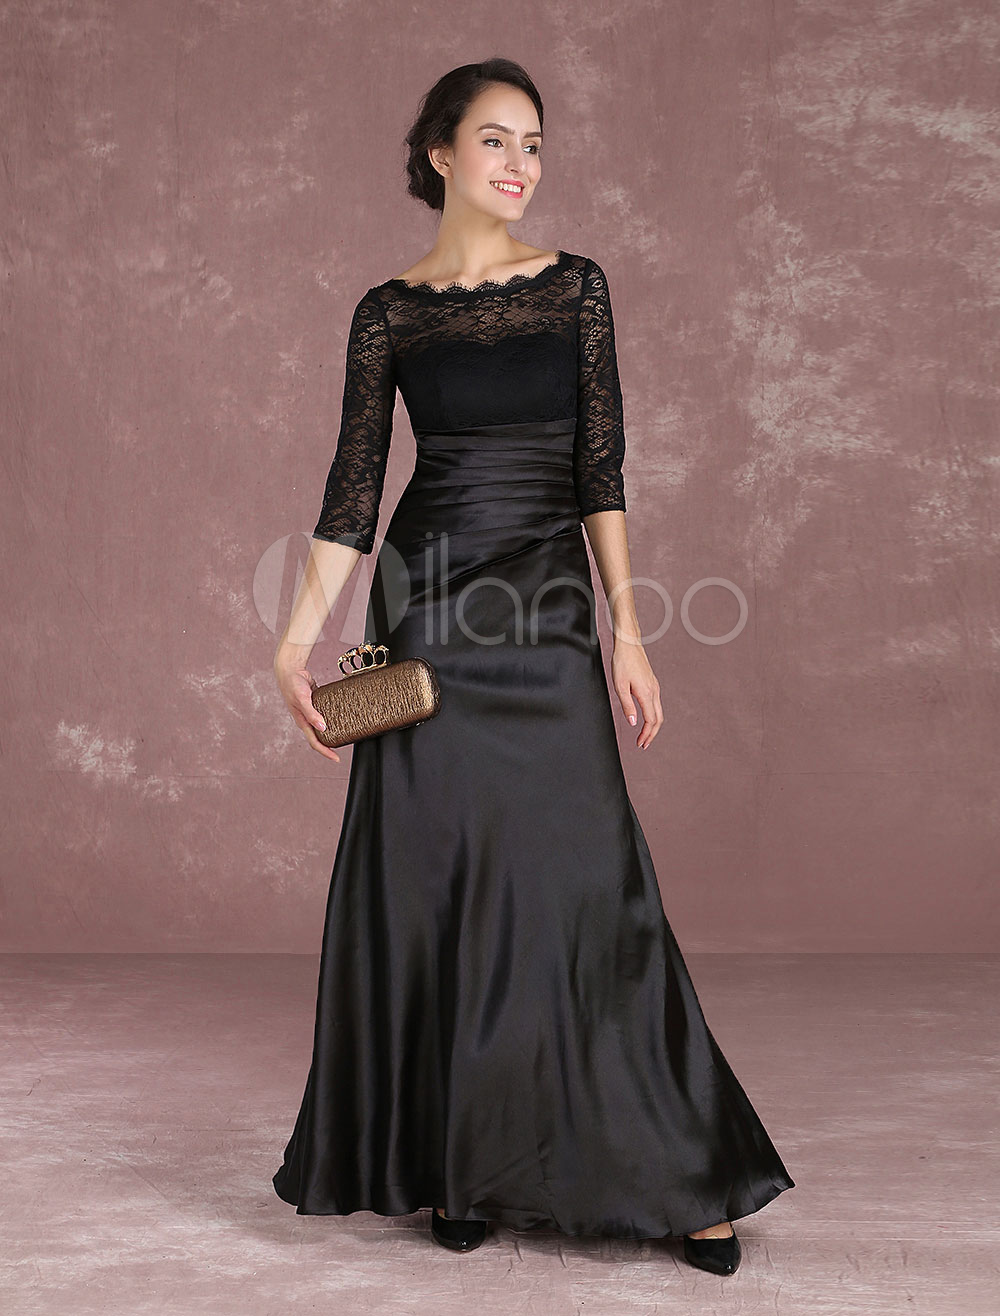 Buy Black Mother Of The Bride Dresses Lace Illusion Half Sleeve Evening Dresses Satin Floor Length Formal Dress for $174.24 in Milanoo store